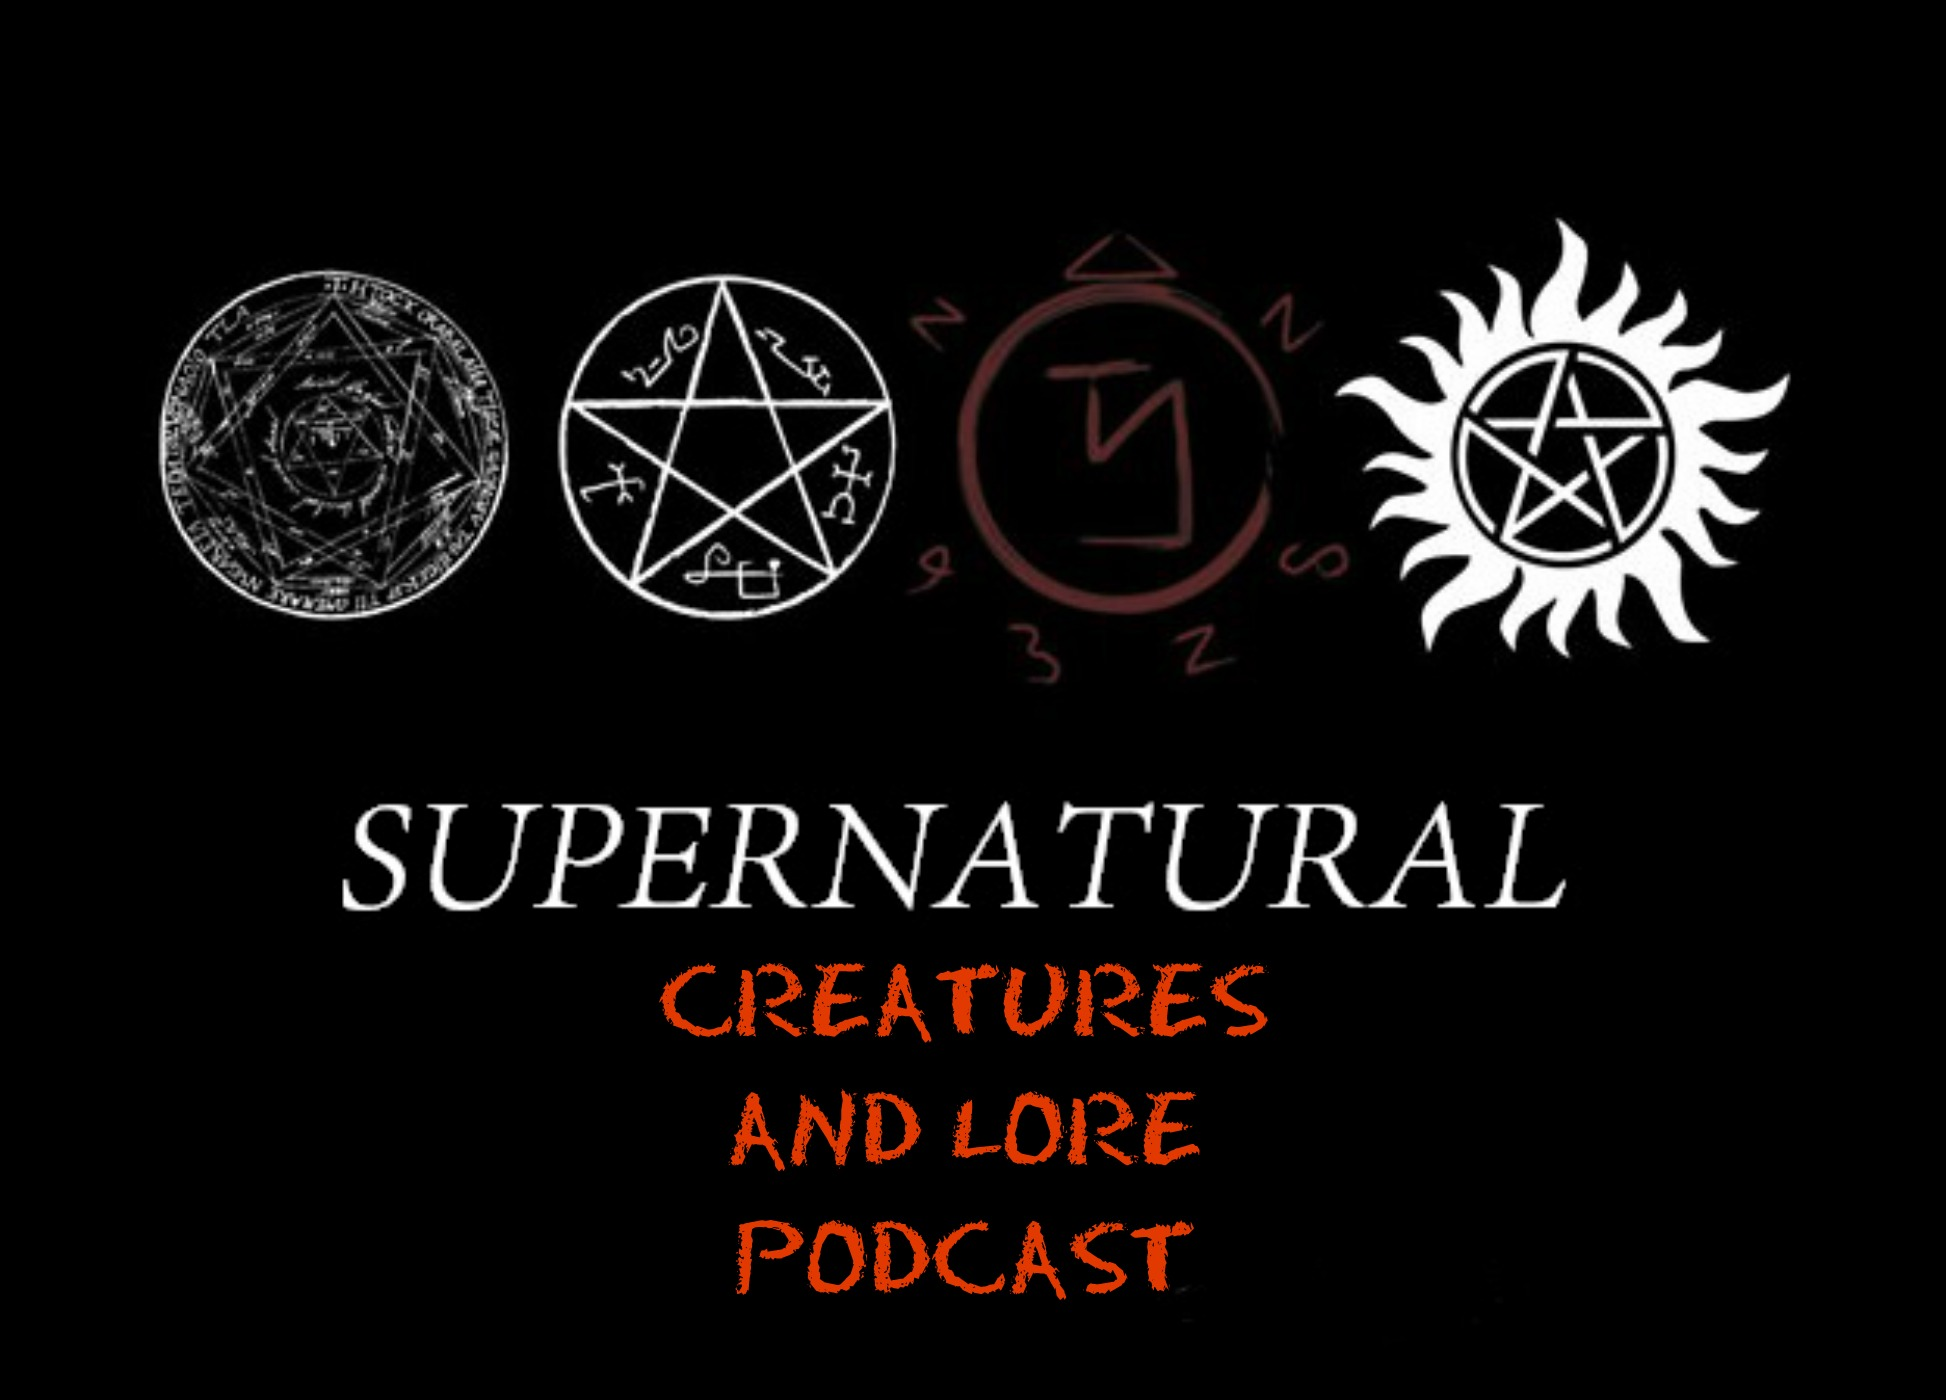 Podfanatic Podcast Supernatural Creatures And Lore